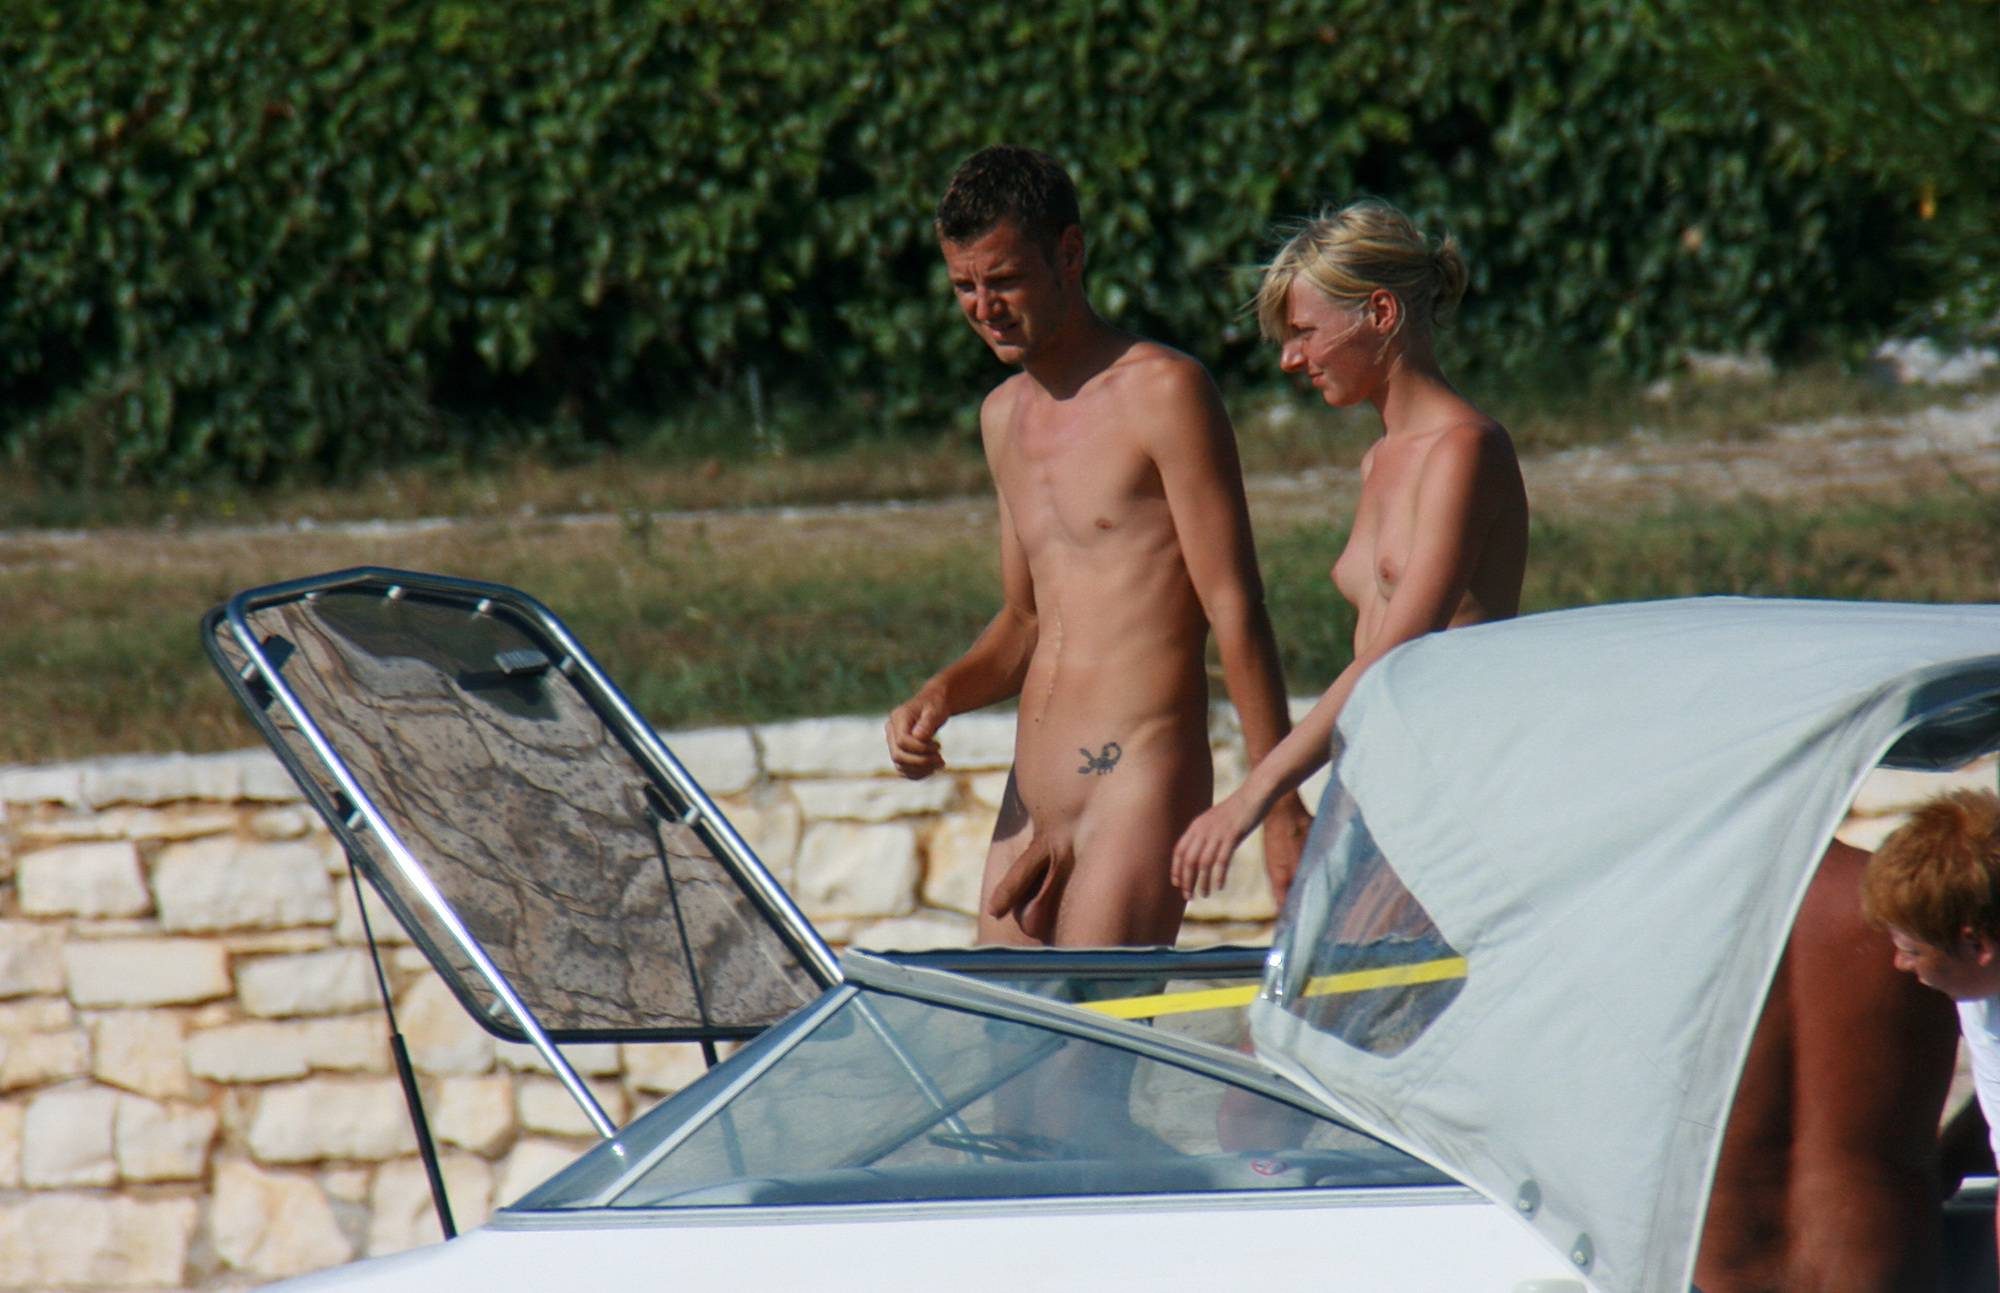 Nudist Pictures Casual Beachside Strolling - 1